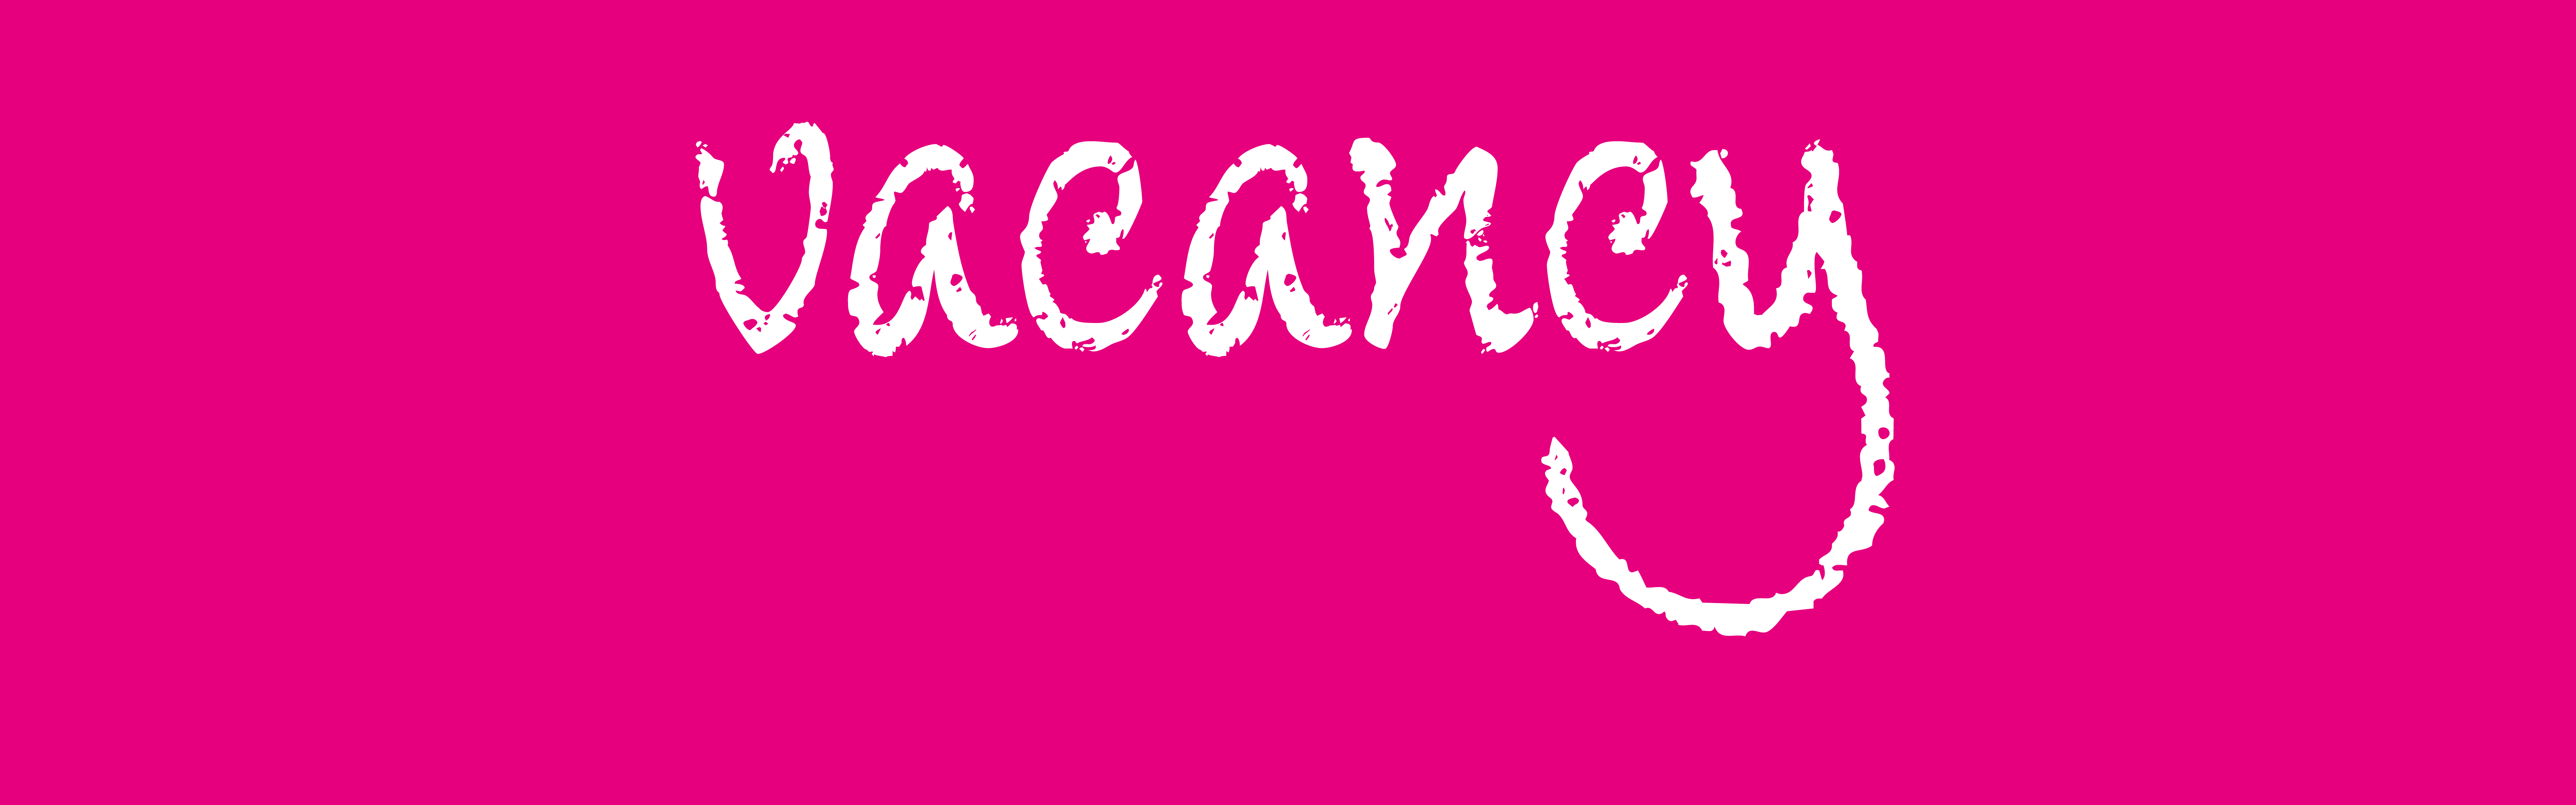 bright pink banner with the word Vacancy written on it